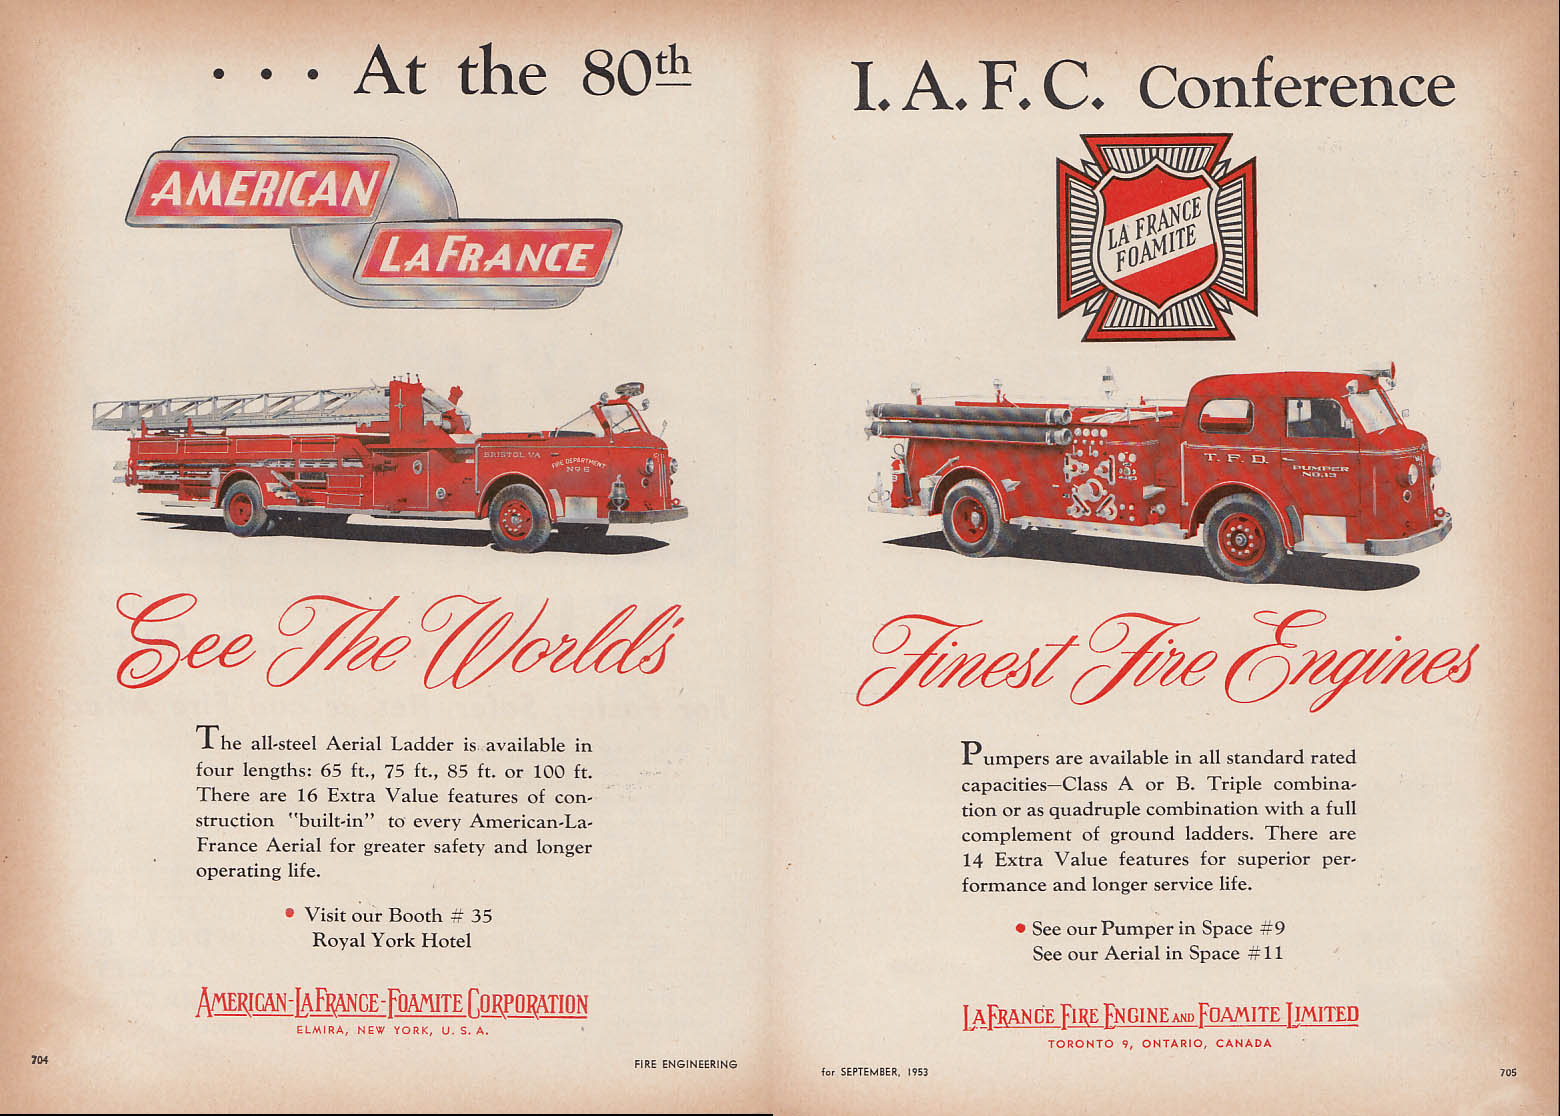 At 80th IAFC Conference American-LaFrance Aerial Ladder & Pumper ad 1953